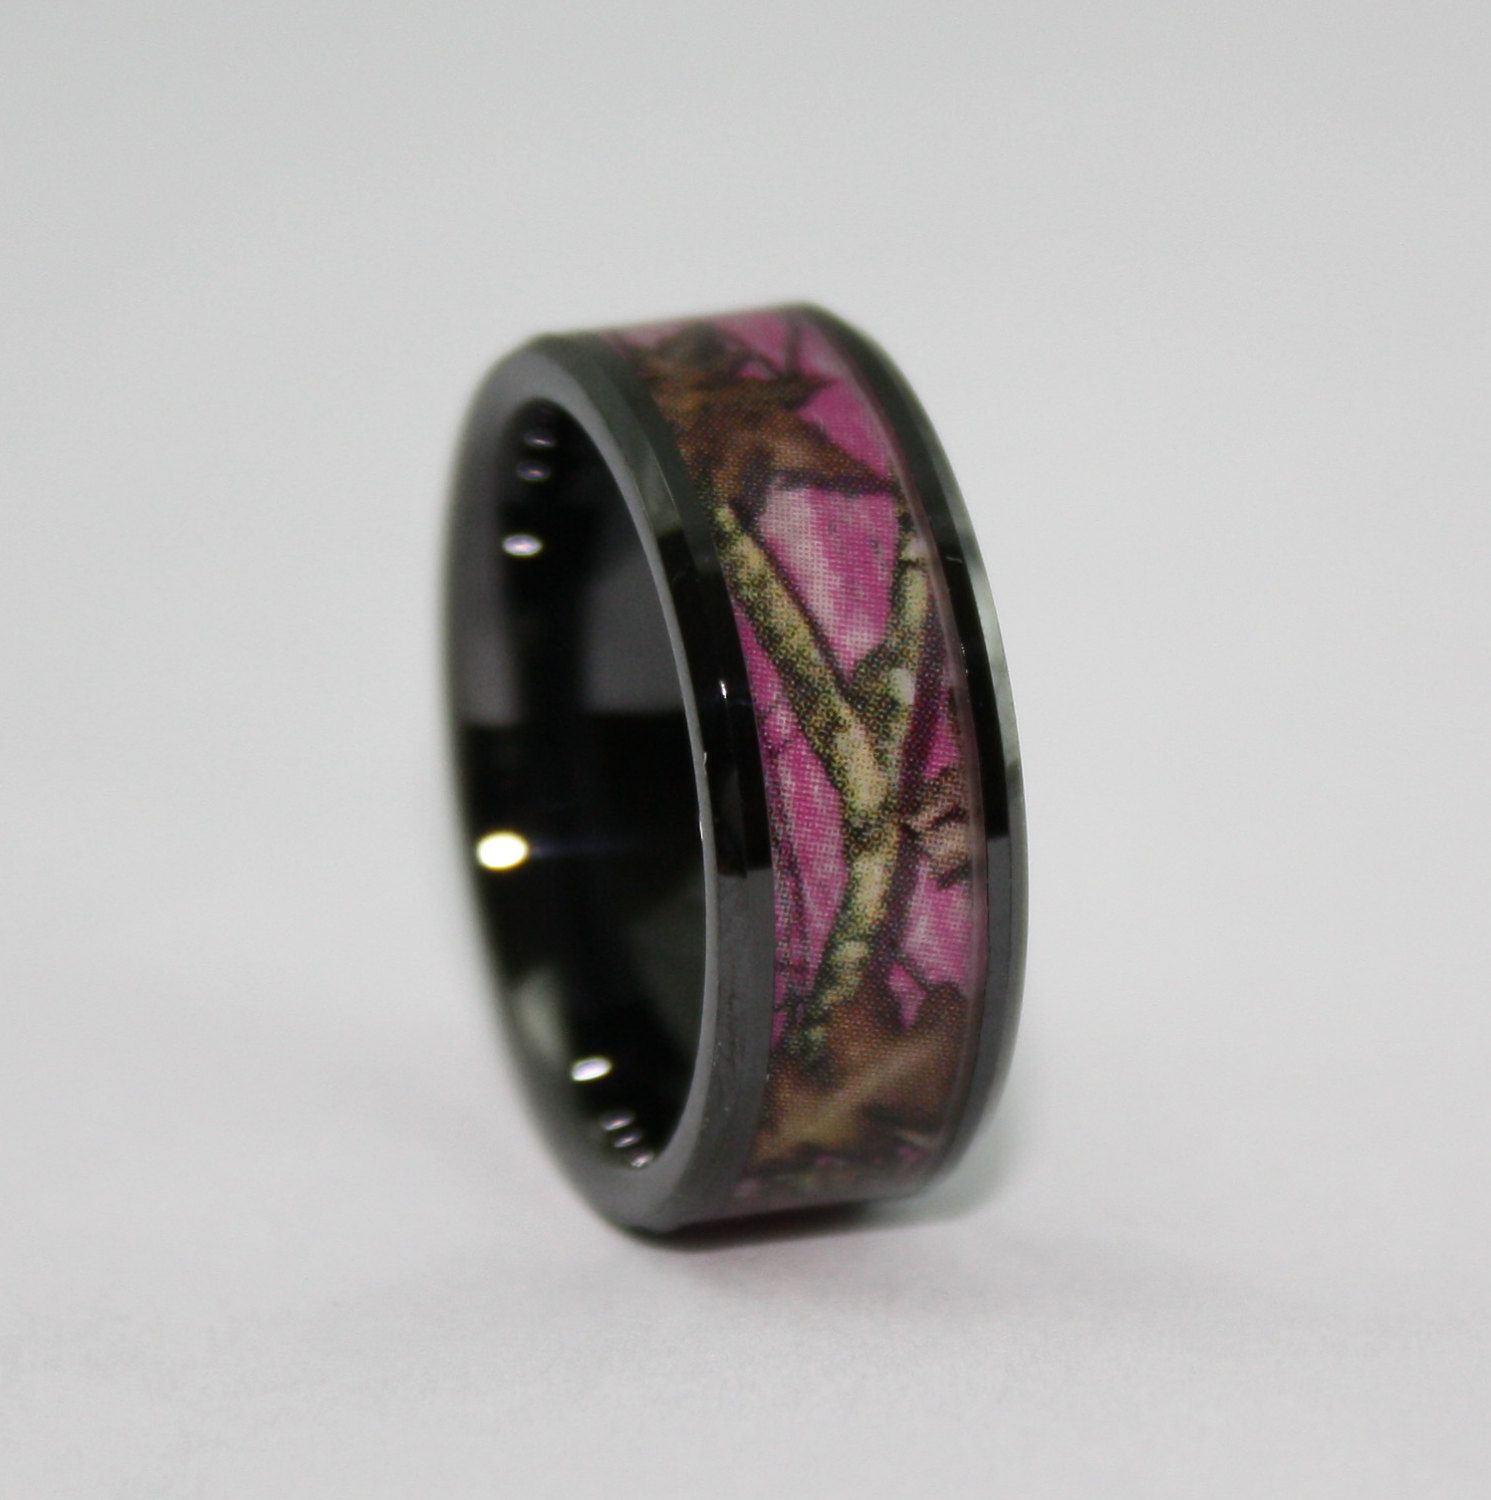 wedding rings for electricians Pink Camo Wedding Rings by ONE CAMO Pink Camo Black Rings Pink Camouflage Wedding Ring Ceramic Ring for Electricians